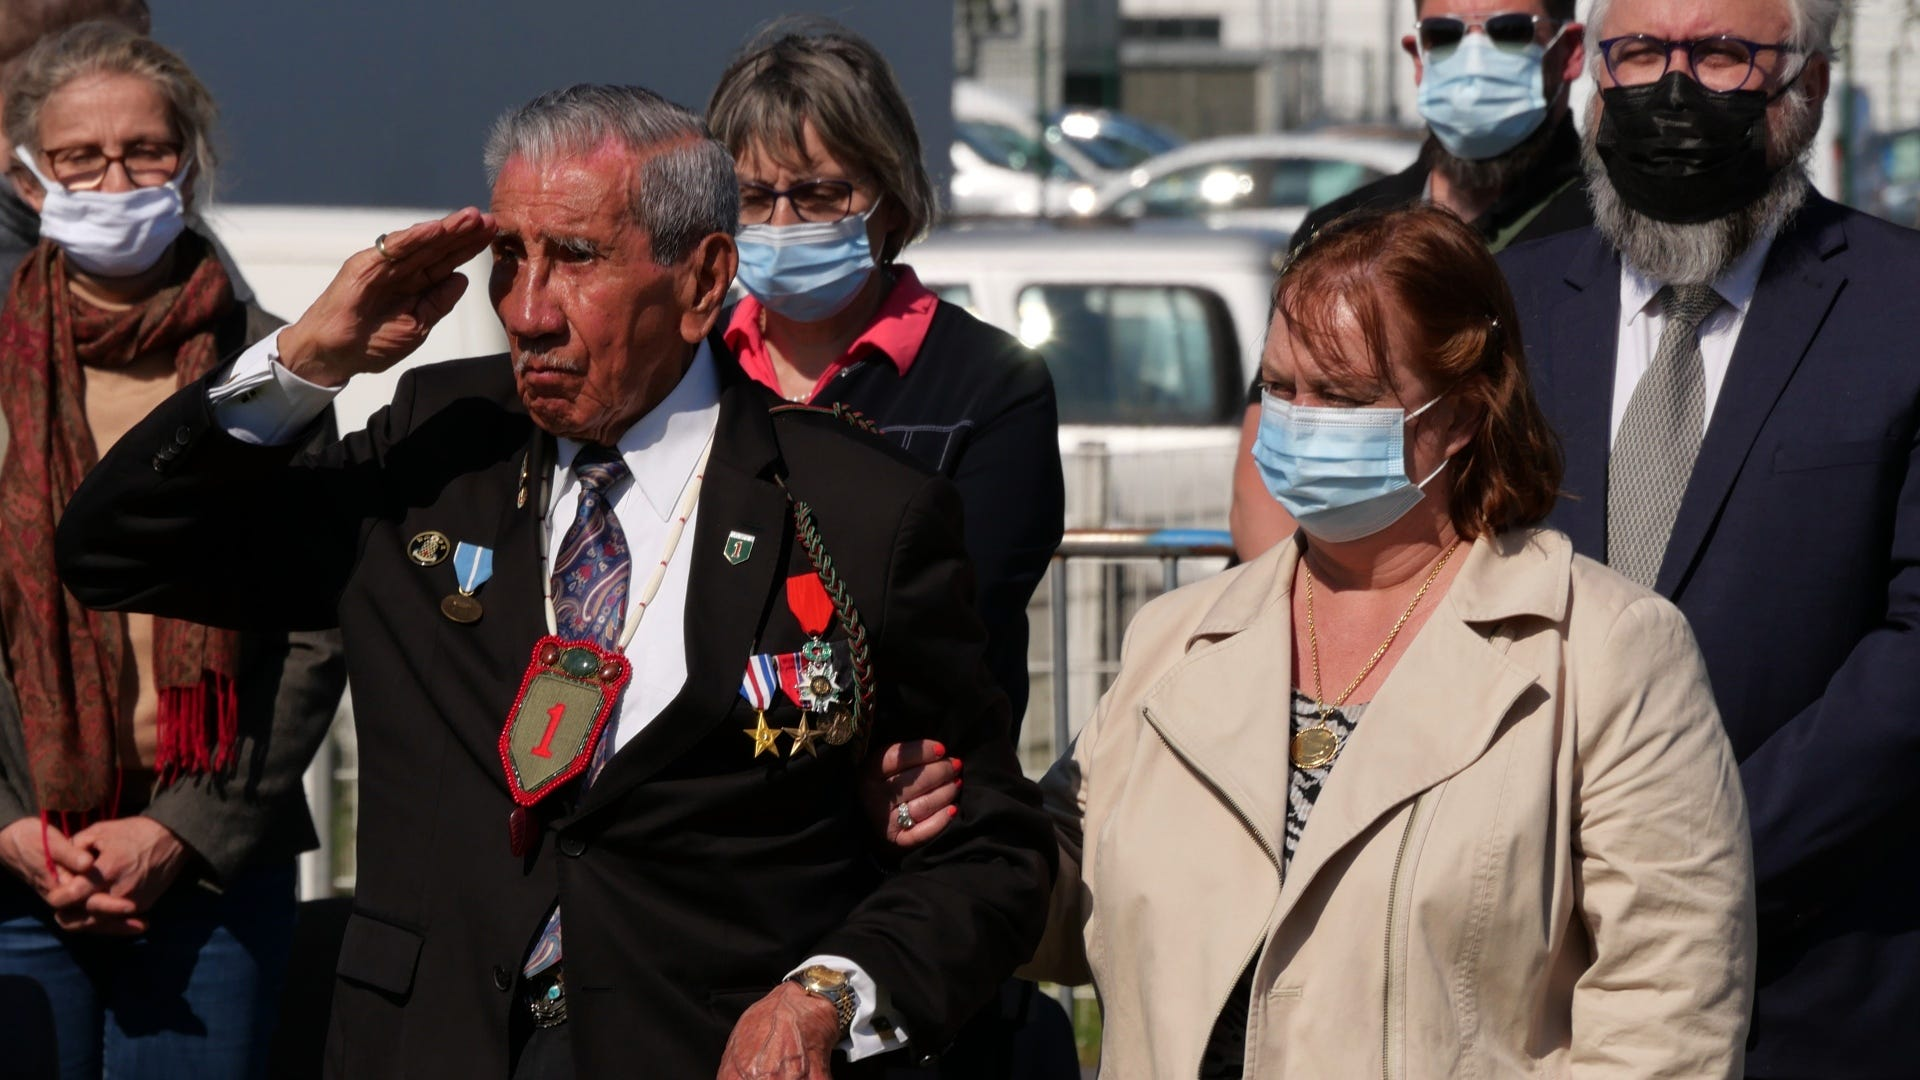 D-Day spirit of remembrance lives on, despite the pandemic